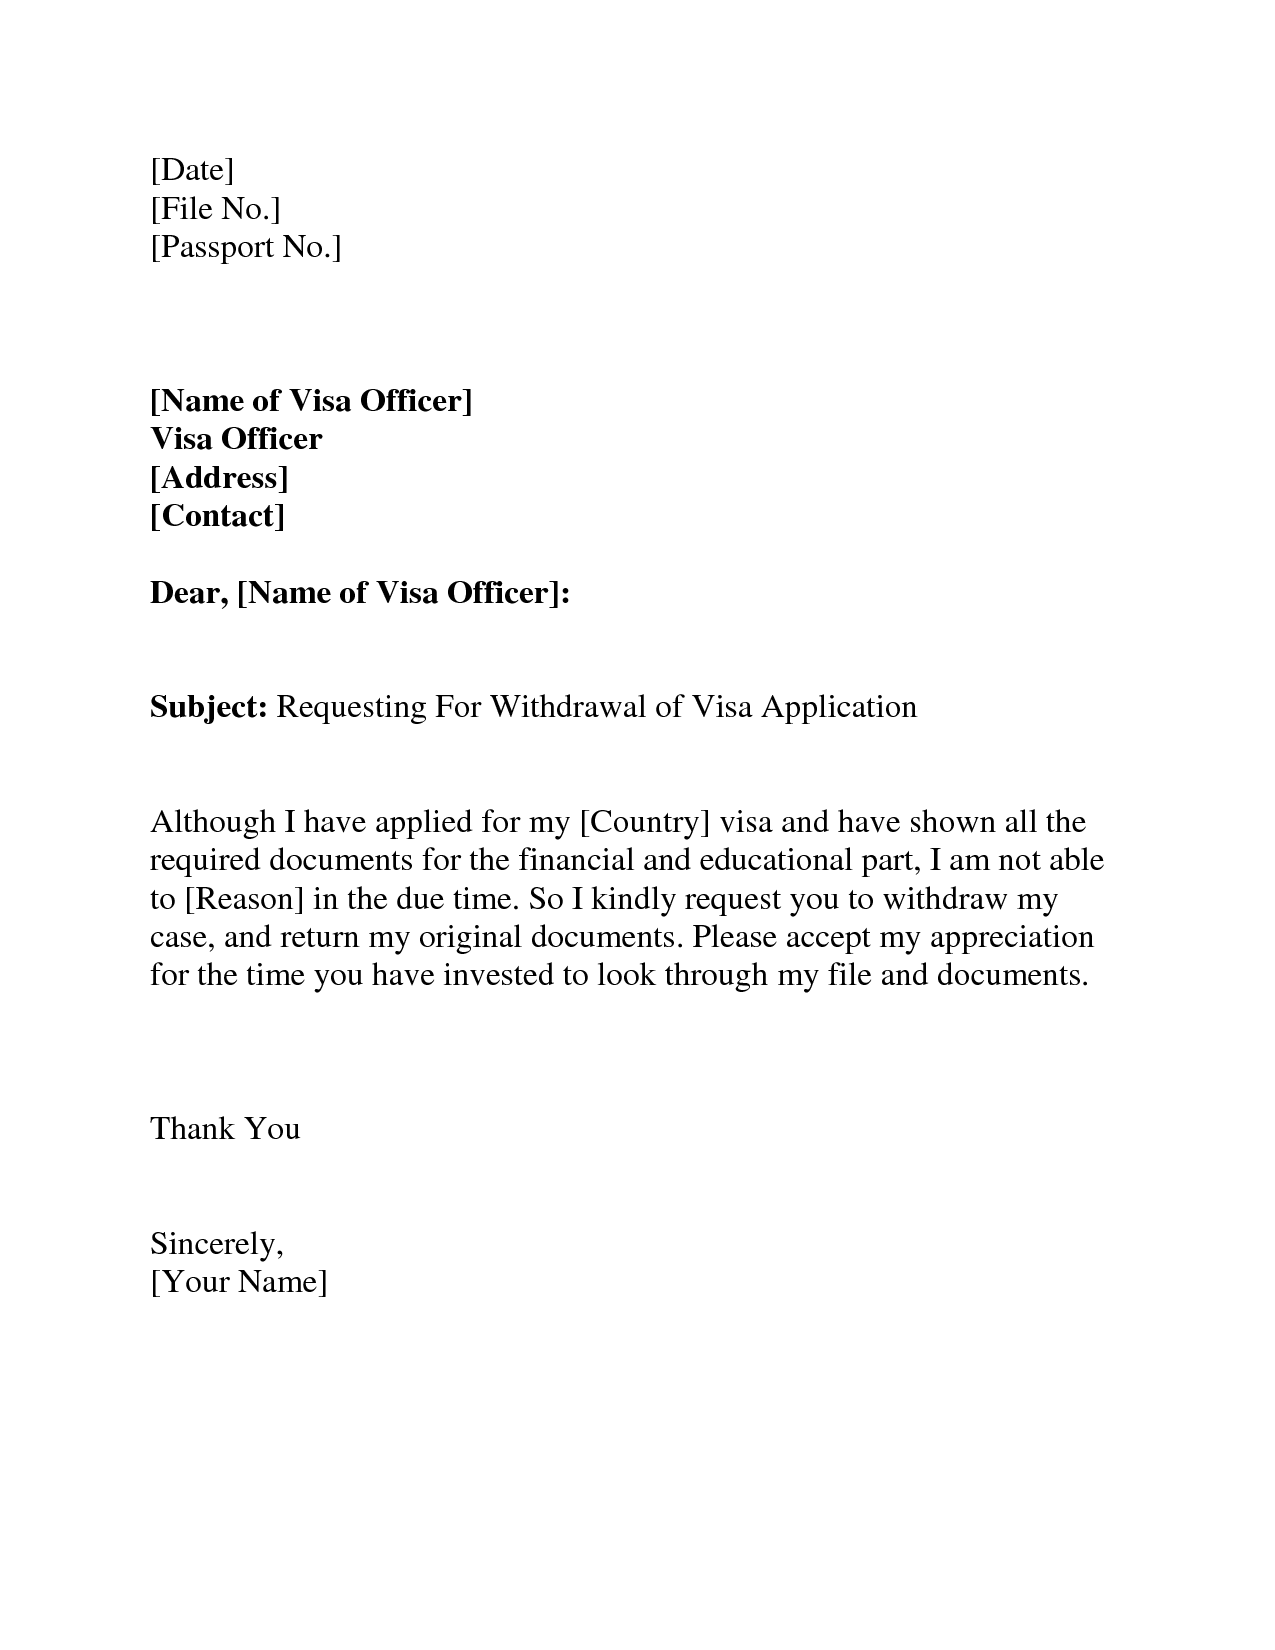 Visa withdrawal letter request letter format letter and emailvisa visa withdrawal letter request letter format letter and emailvisa invitation letter to a friend example application letter sample spiritdancerdesigns Image collections